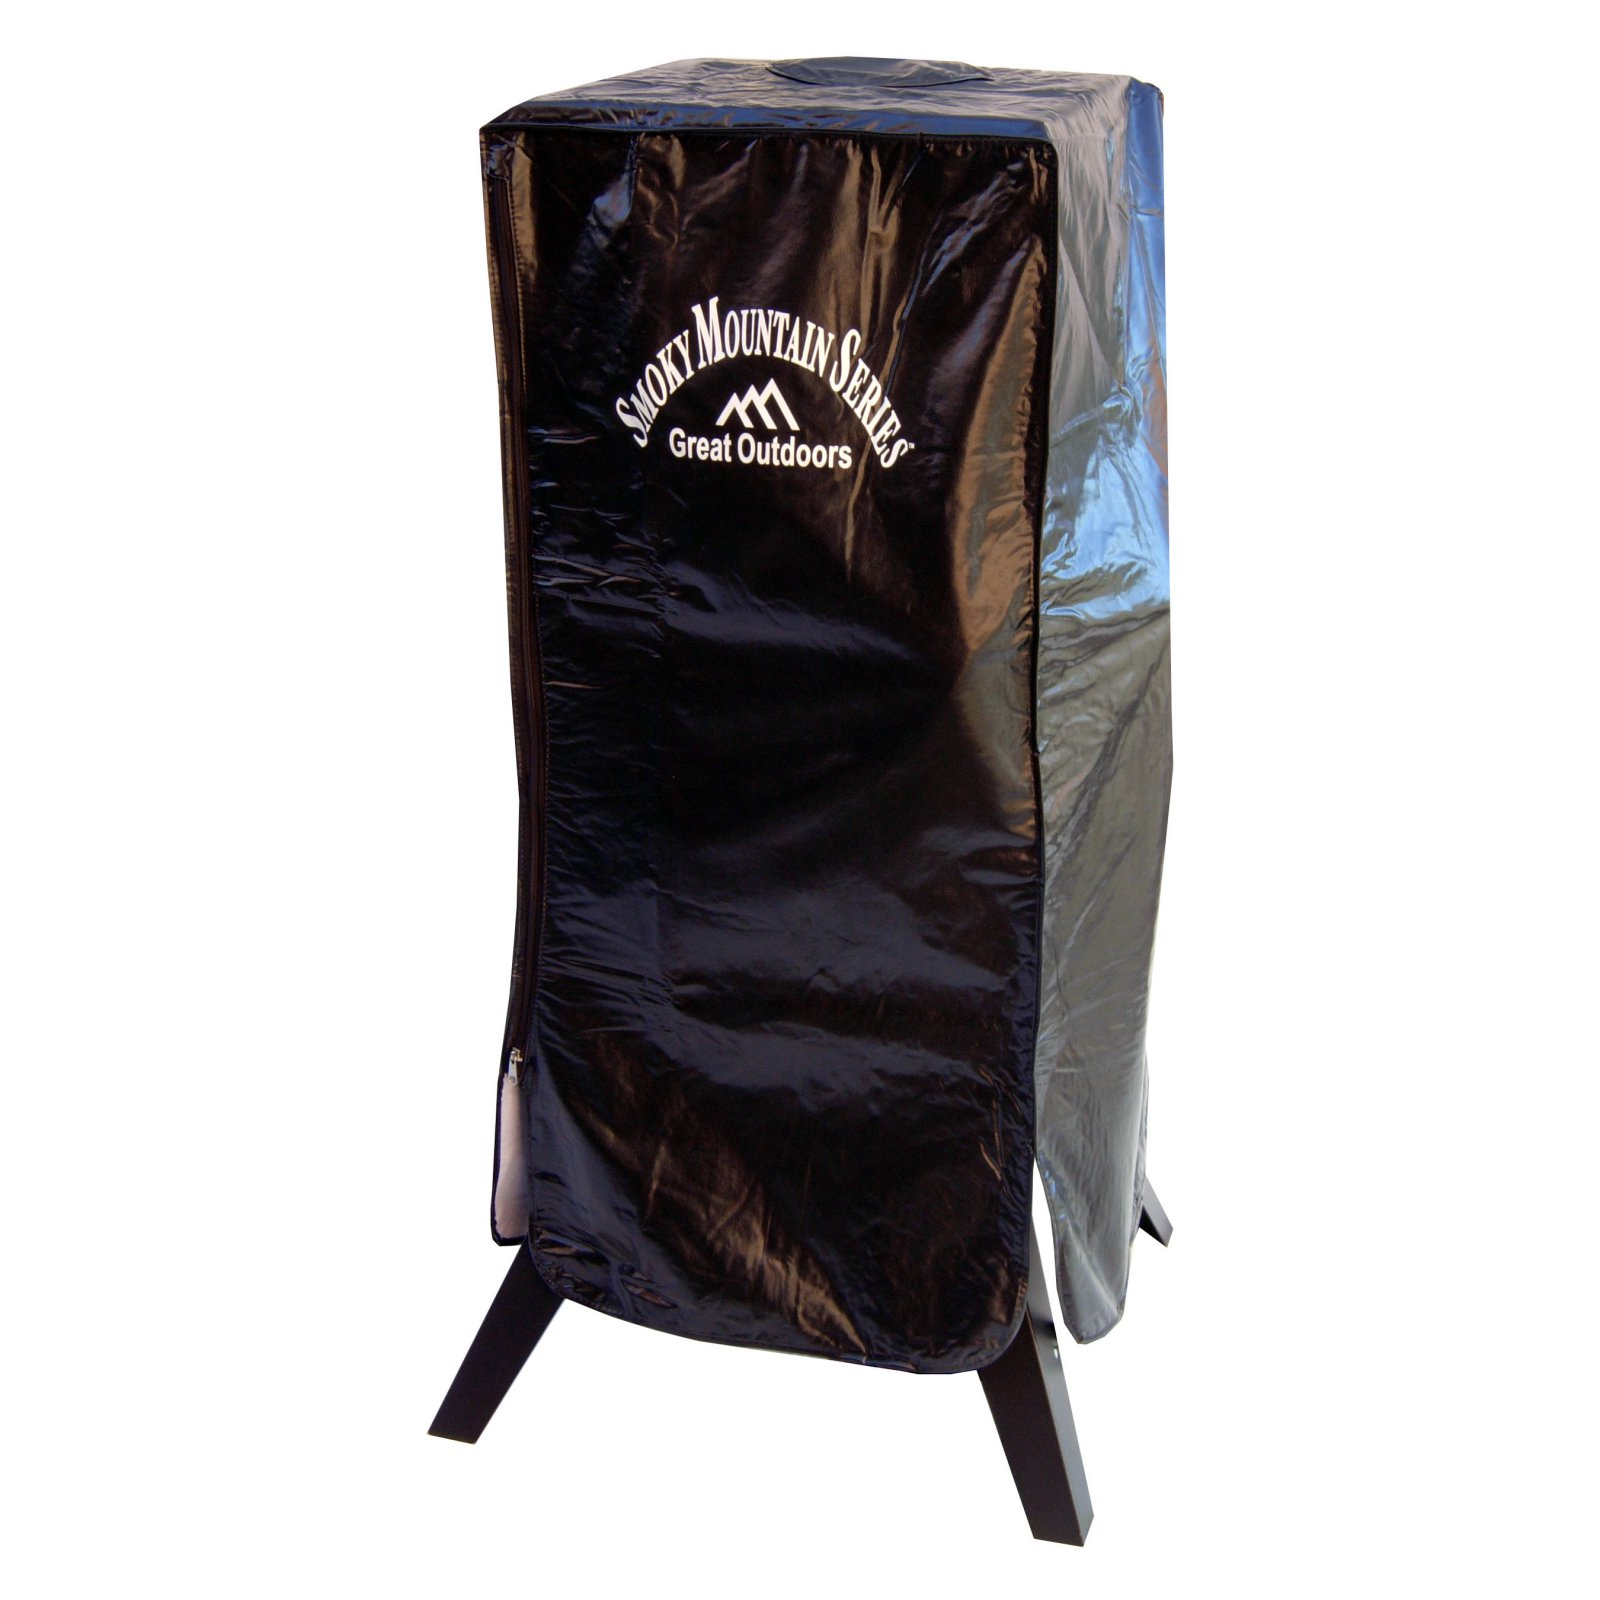 Landmann 38 in. Chamber Vertical Gas Smoker Protective Cover